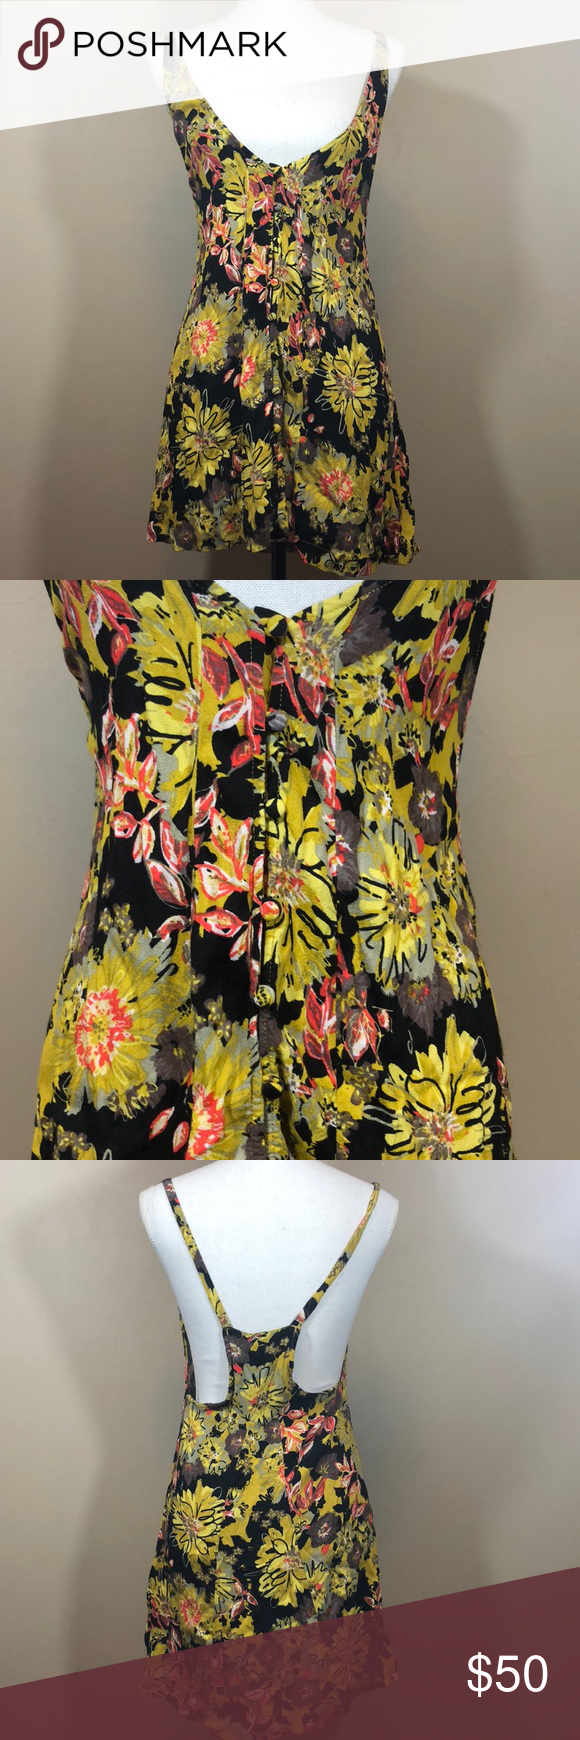 Free People 4 Floral Halter Dress I m not sure if this is a dress or tunic.  Very flowy with buttons in the front. Deep v neck front. 2b0cdc5b3